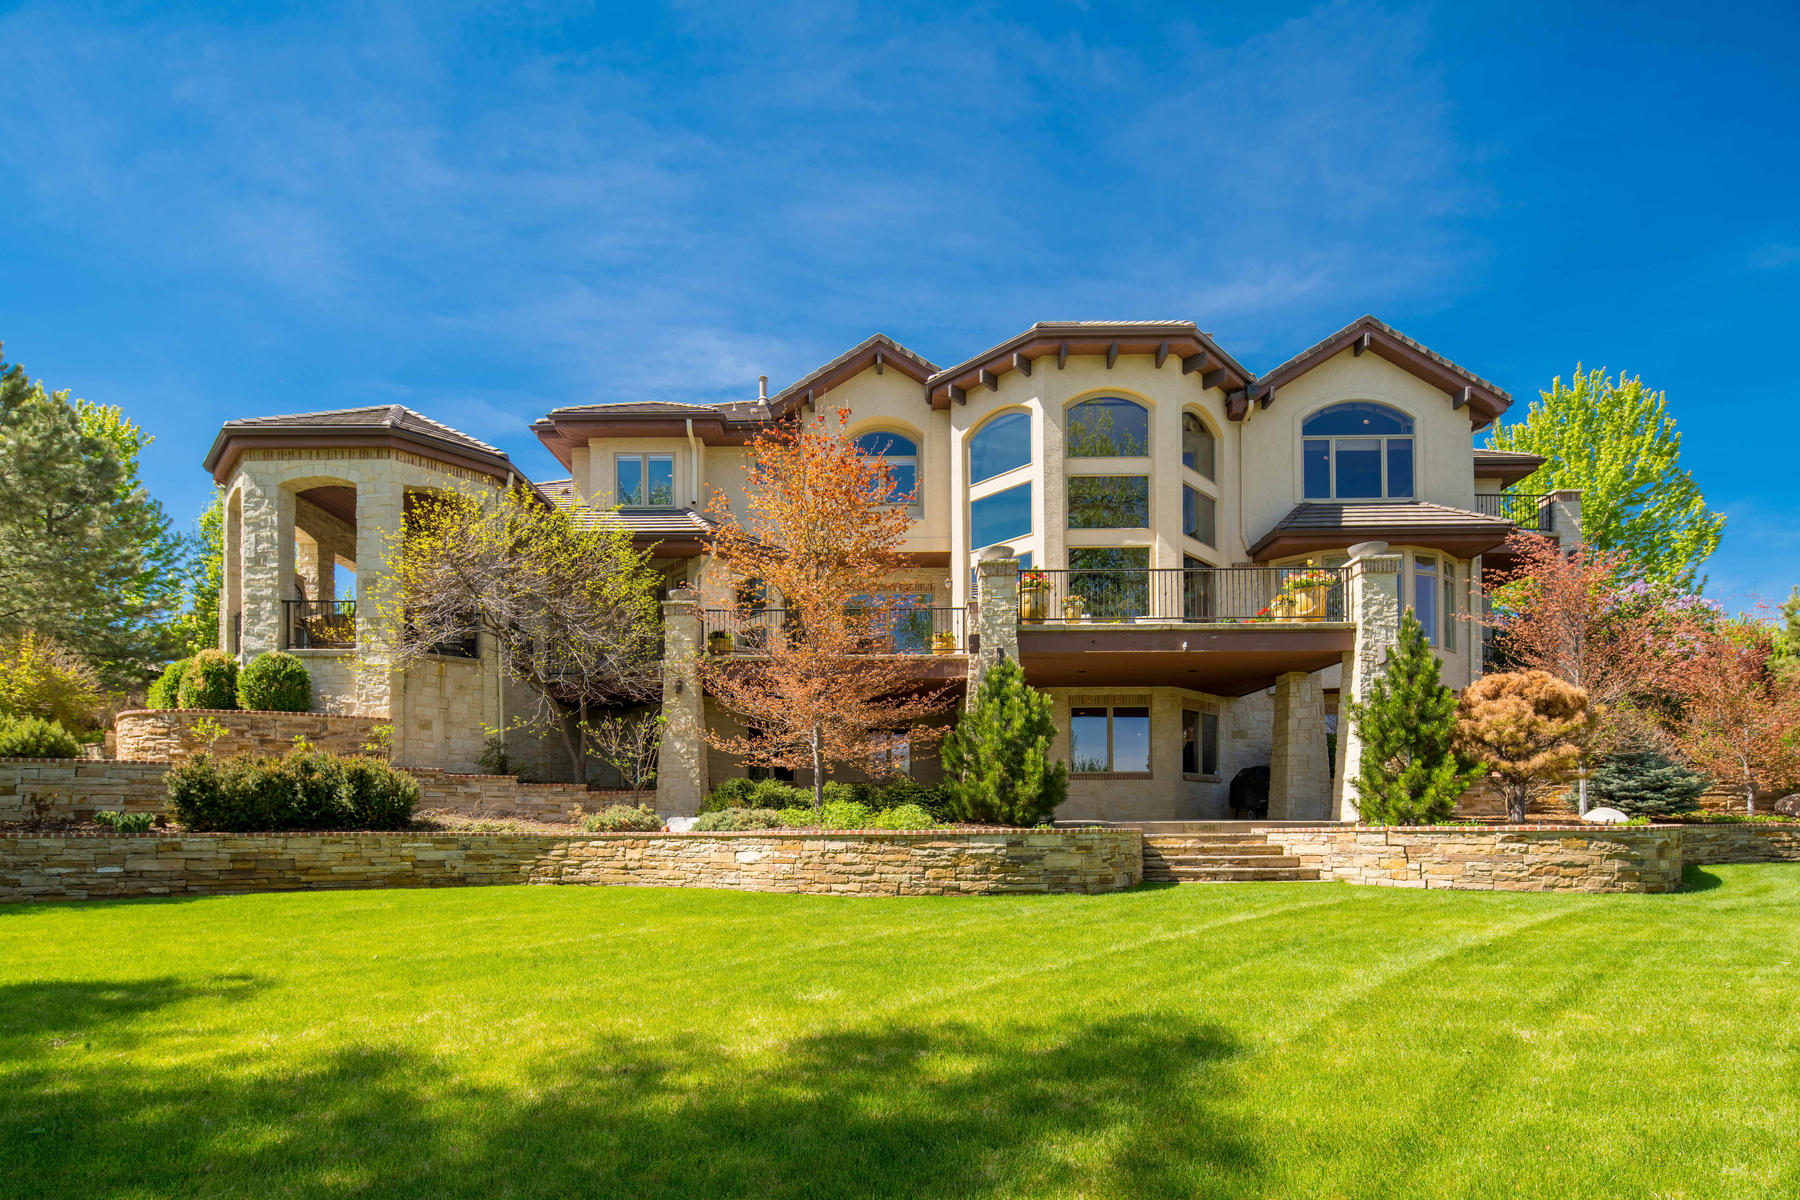 Single Family Homes для того Продажа на Spectacular Estate on One of the Most Beautiful Settings You Can Imagine! 5480 S Highline Circle, Greenwood Village, Колорадо 80121 Соединенные Штаты